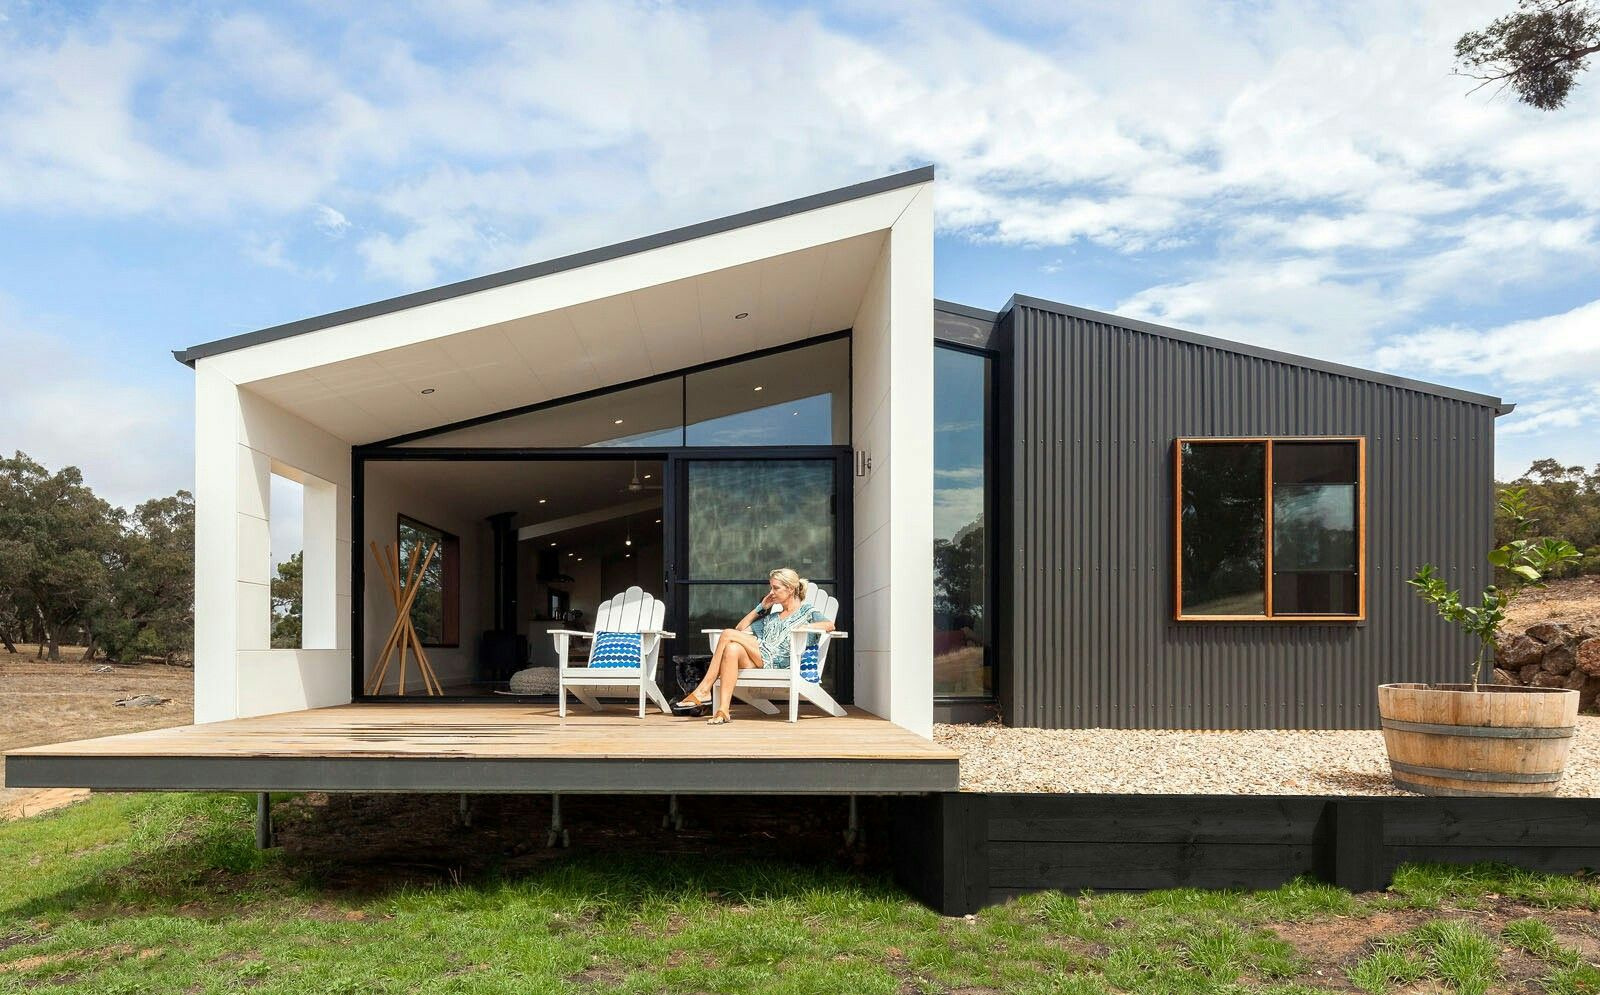 Architecturally Designed Kit Homes Homemade Ftempo